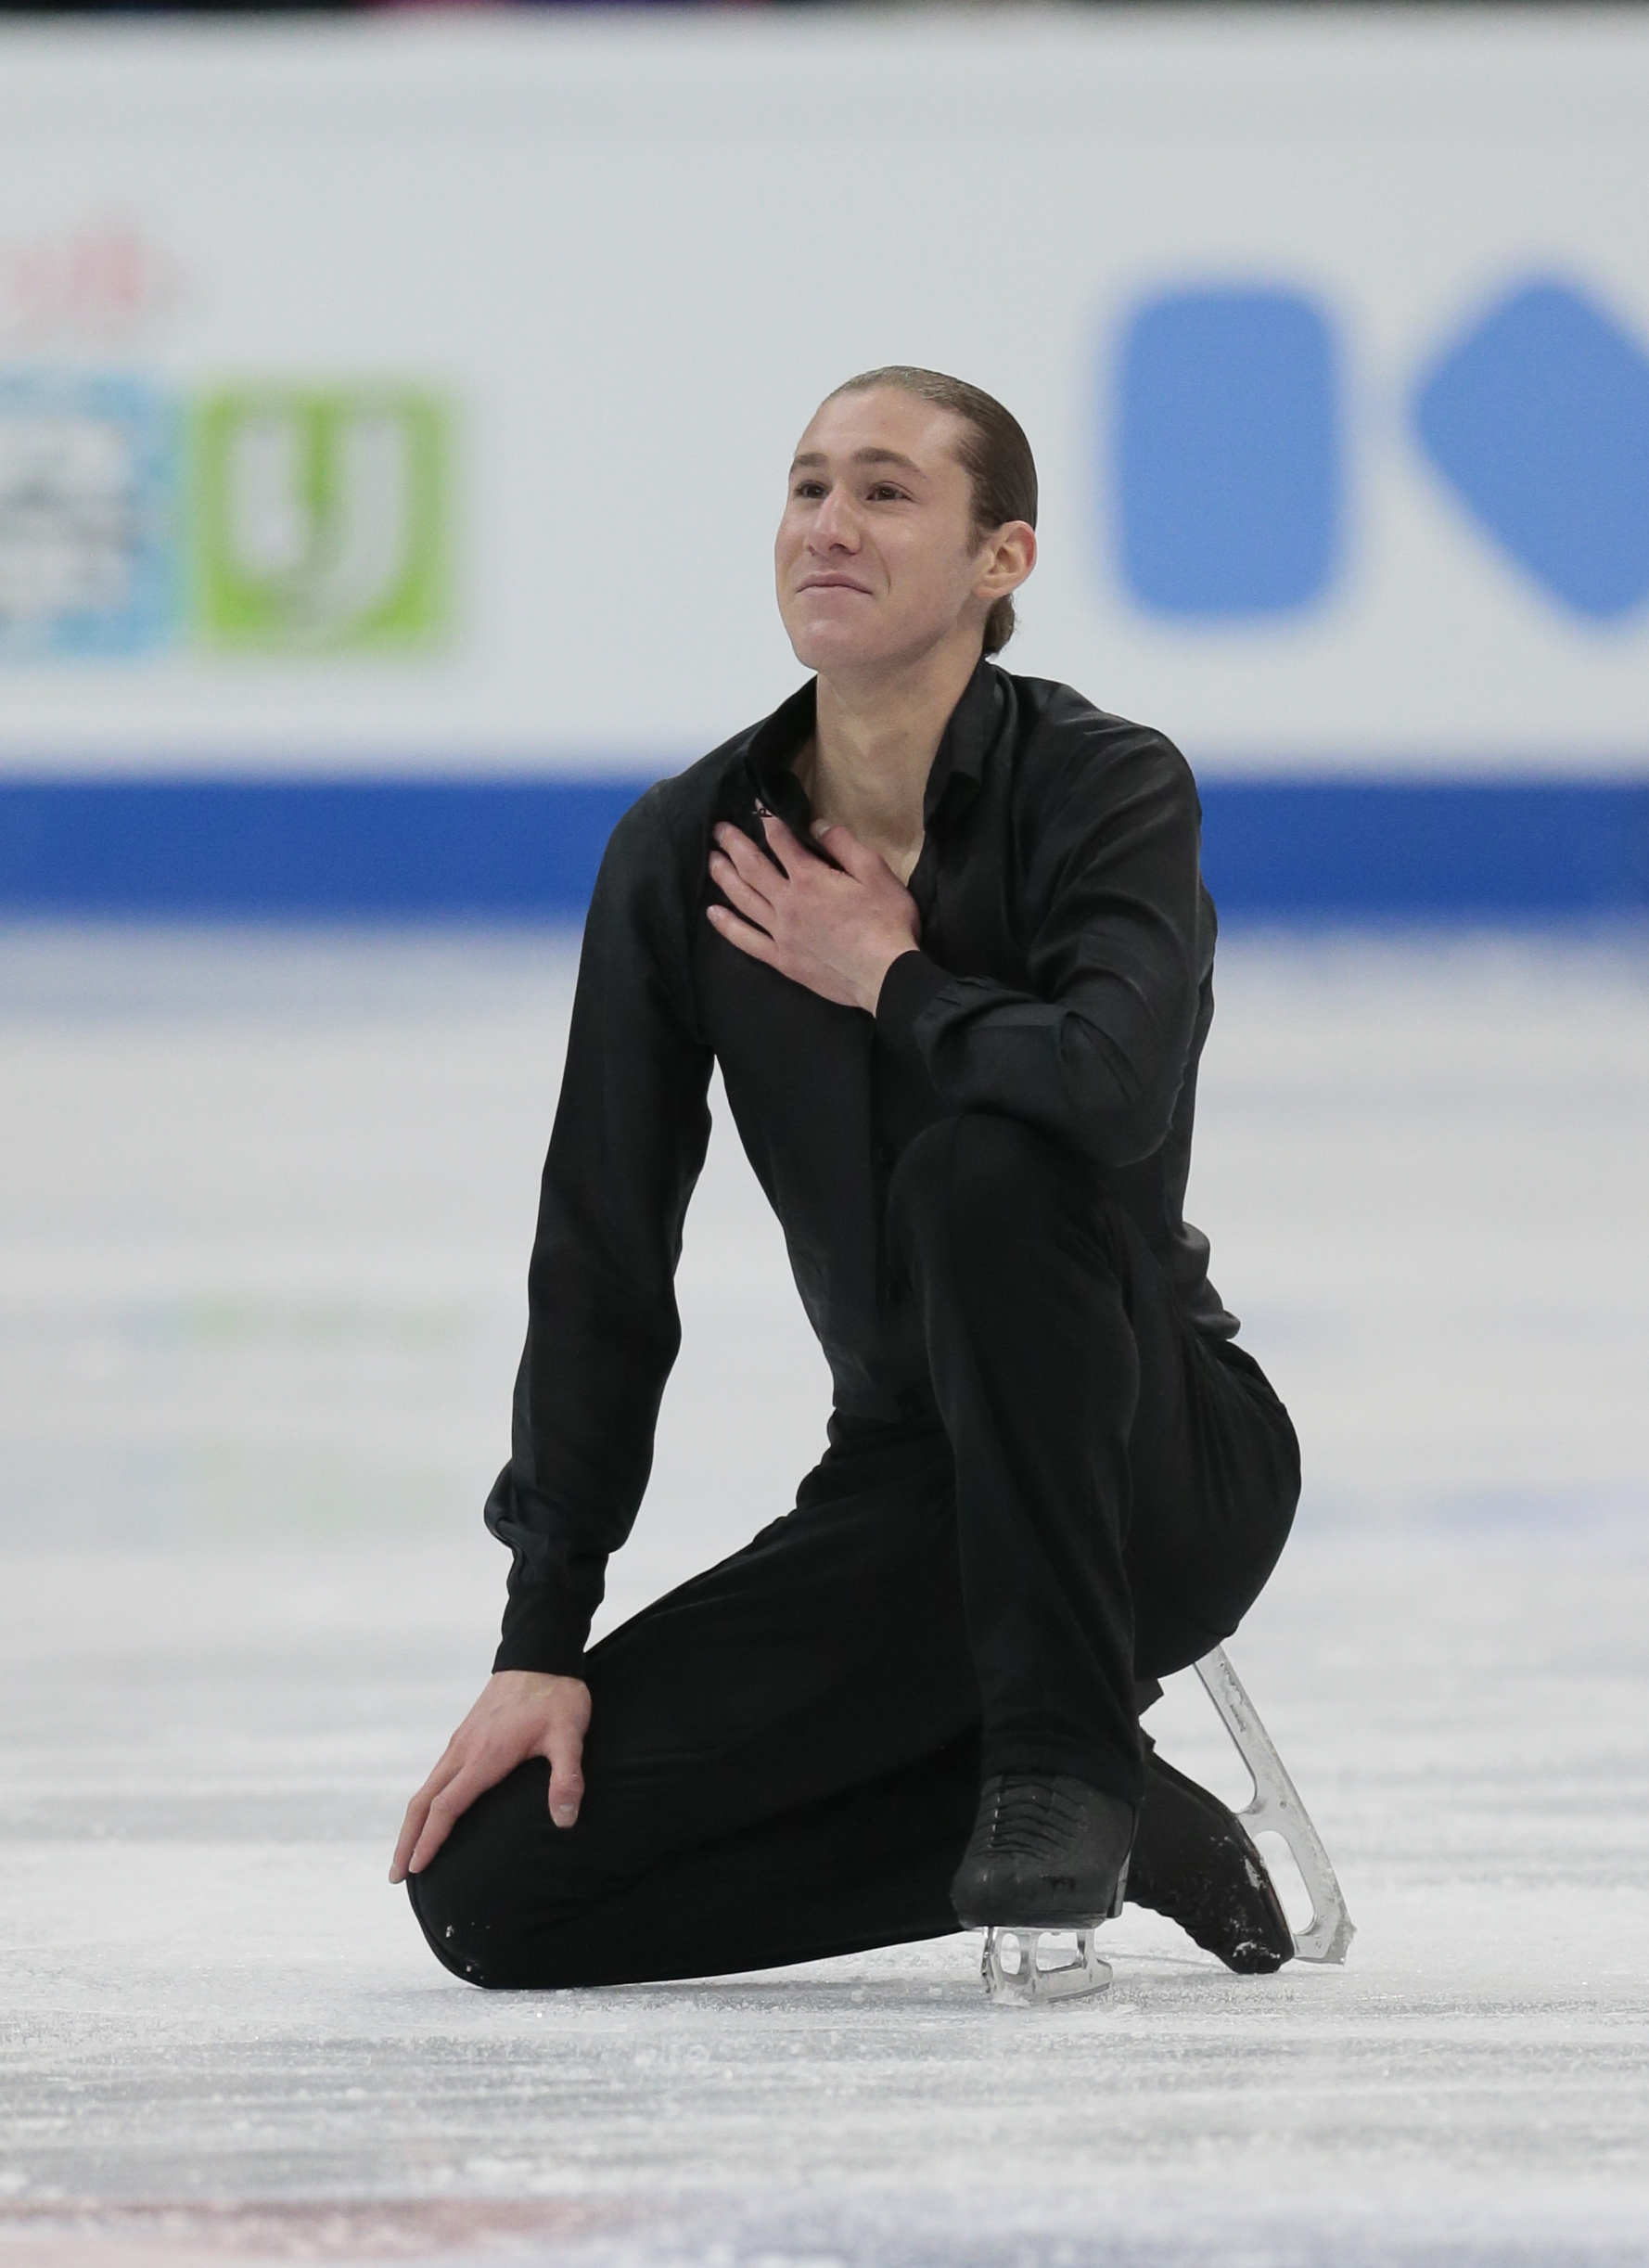 Jason Brown, of the United States, reacts after skating his free program at the World figure skating championships in Helsinki, Finland, on Saturday, April 1, 2017. (AP Photo/Ivan Sekretarev)